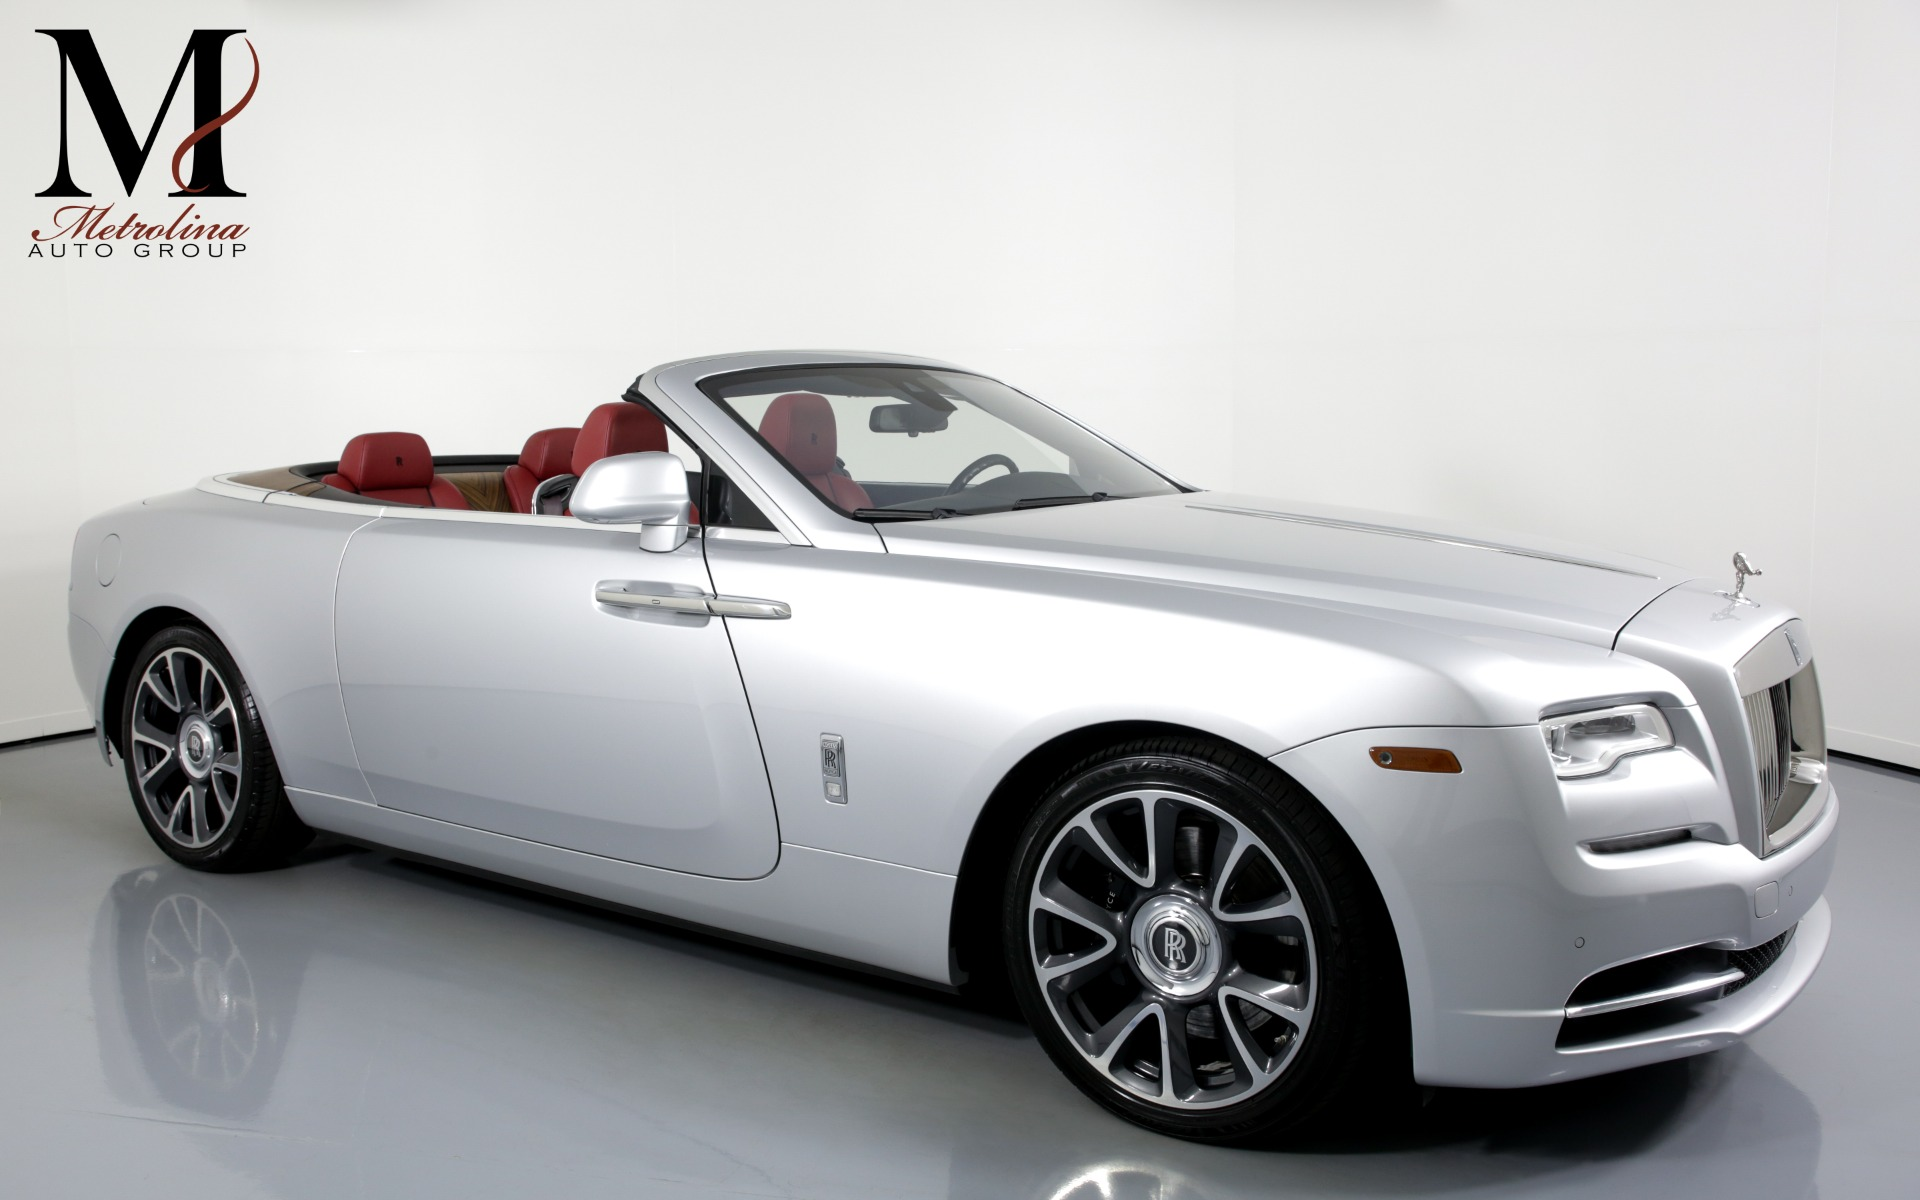 Used 2016 Rolls-Royce Dawn Base 2dr Convertible for sale $227,456 at Metrolina Auto Group in Charlotte NC 28217 - 1